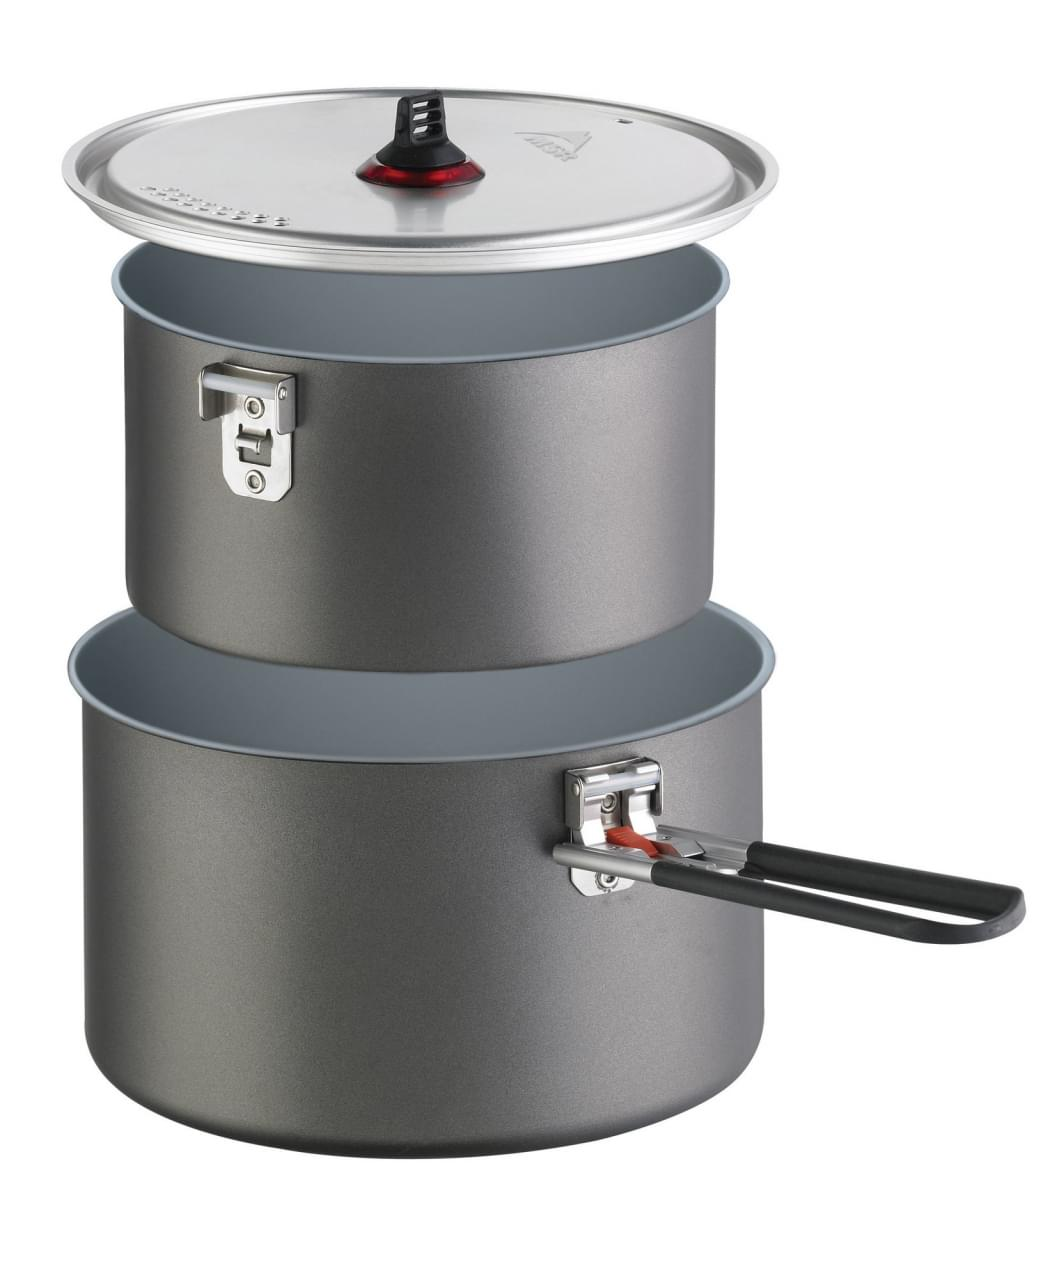 MSR Ceramic 2-Pot Set Pannenset